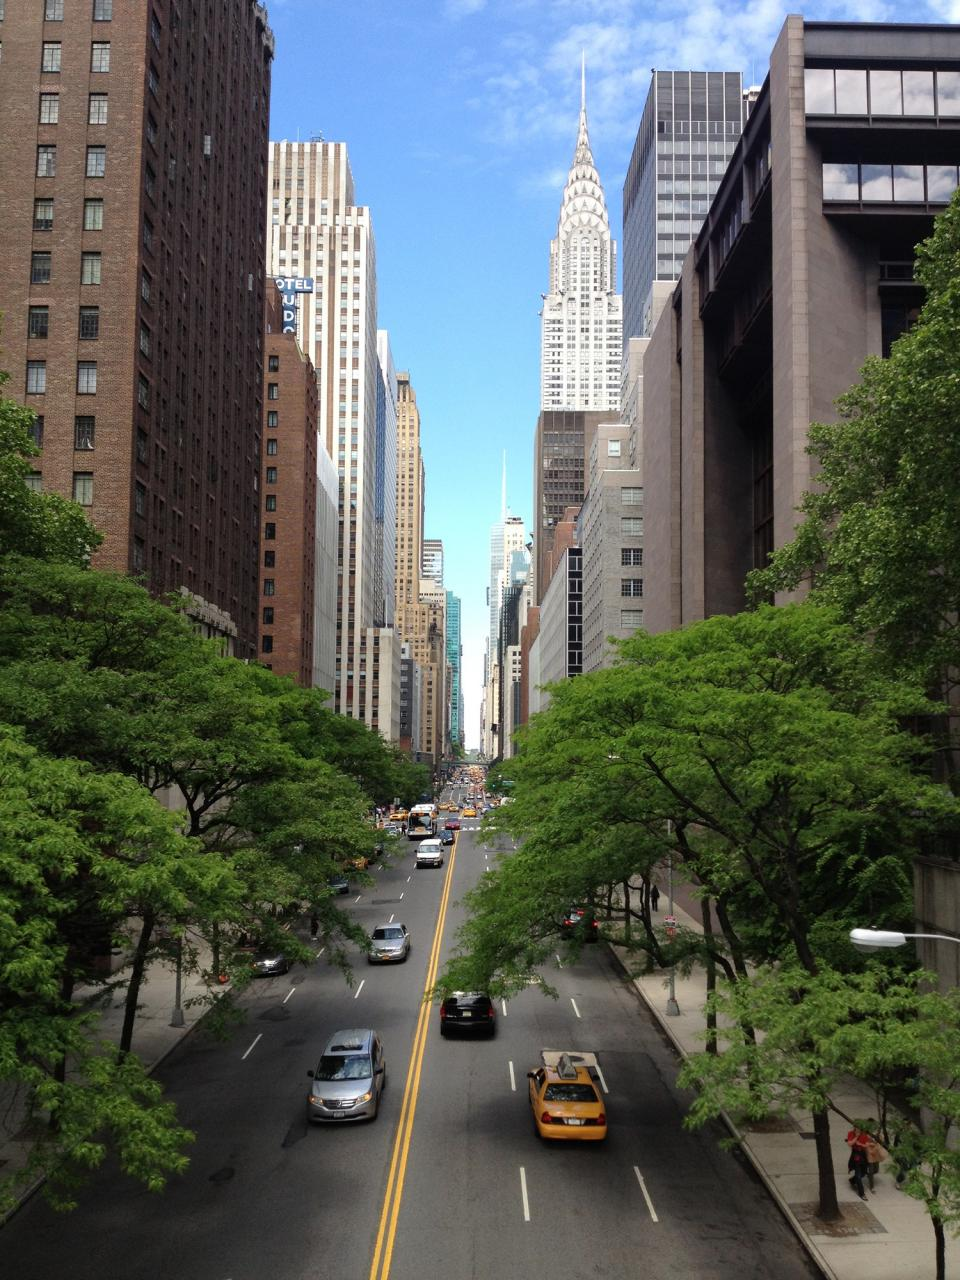 new york, city, road, street, cars, taxis, sidewalk, trees, buildings, empire state, sky, towers